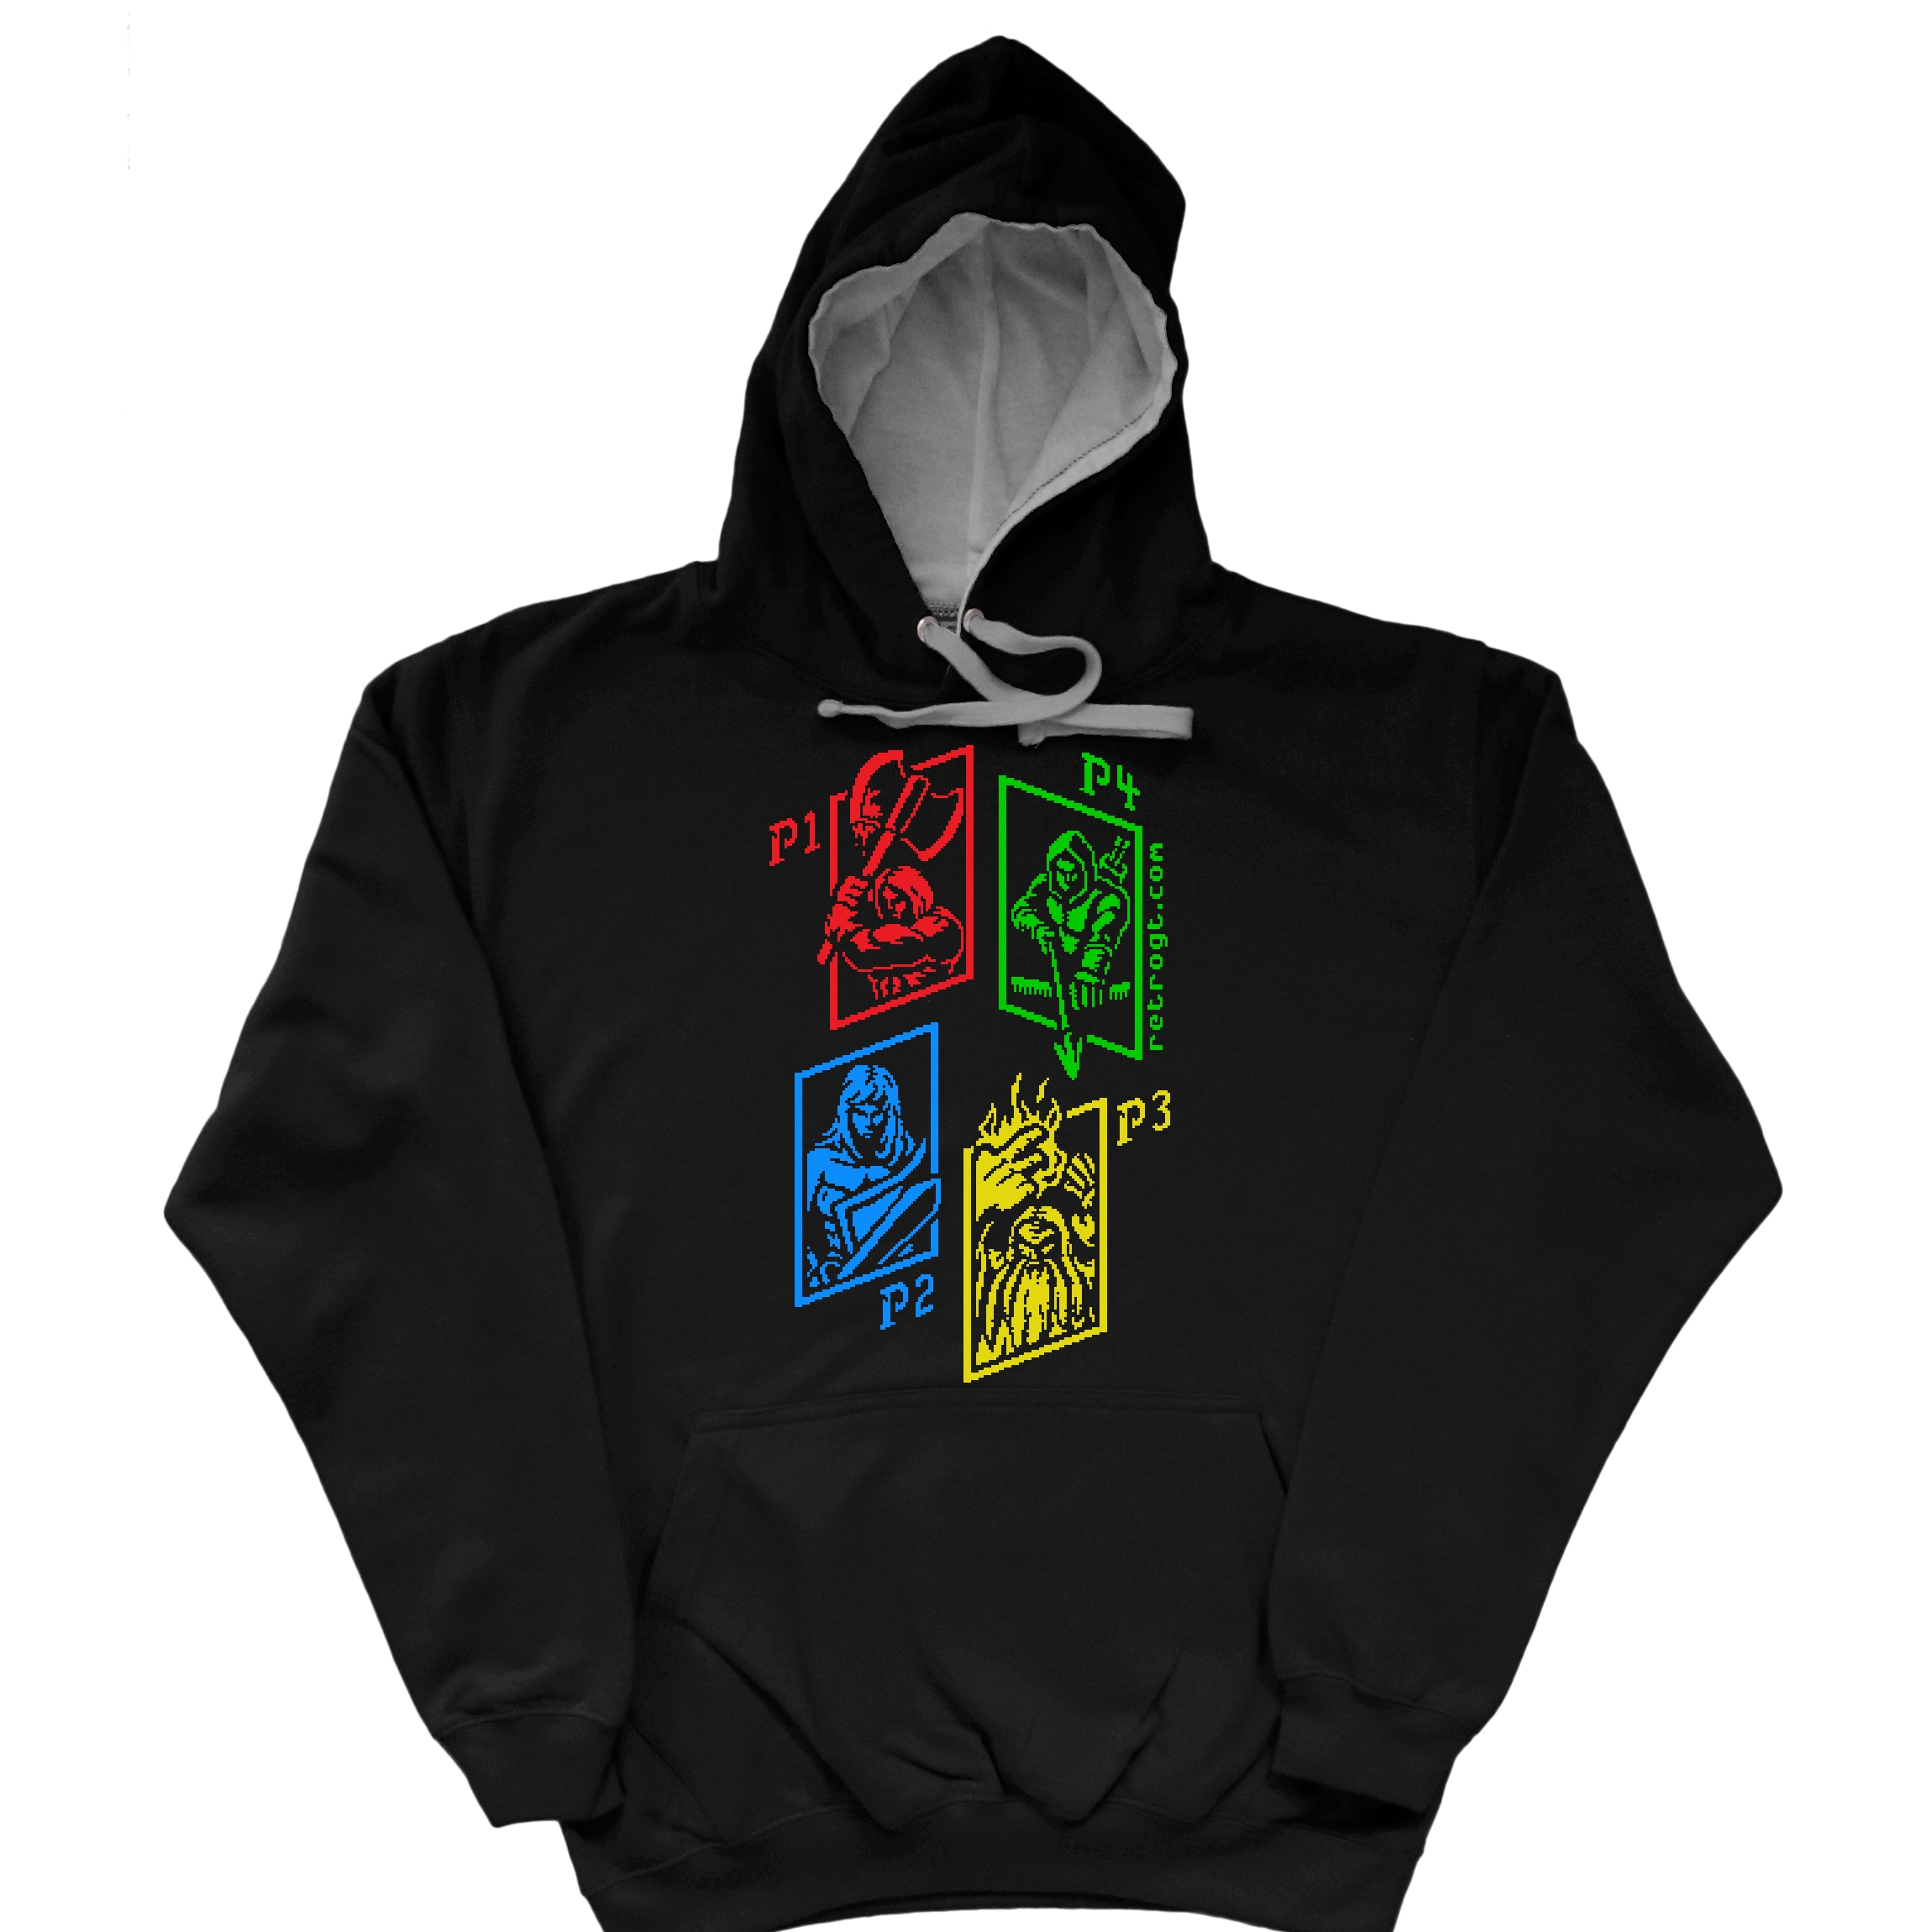 Photograph: Dungeon Crawler Hoodie